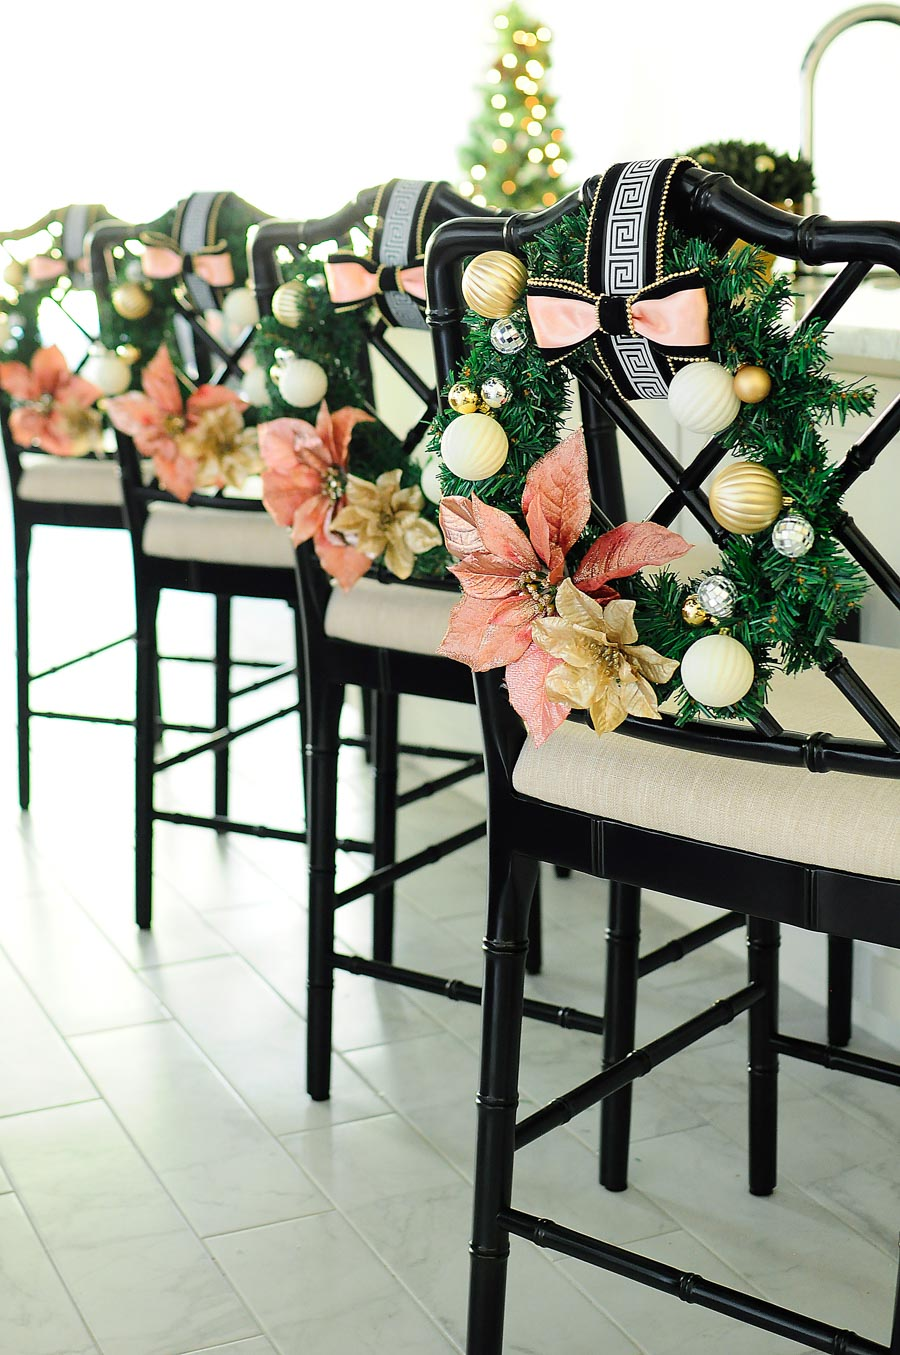 Chinoiserie barstools decorated with blush, white, silver and gold accents for the Christmas/holiday season.